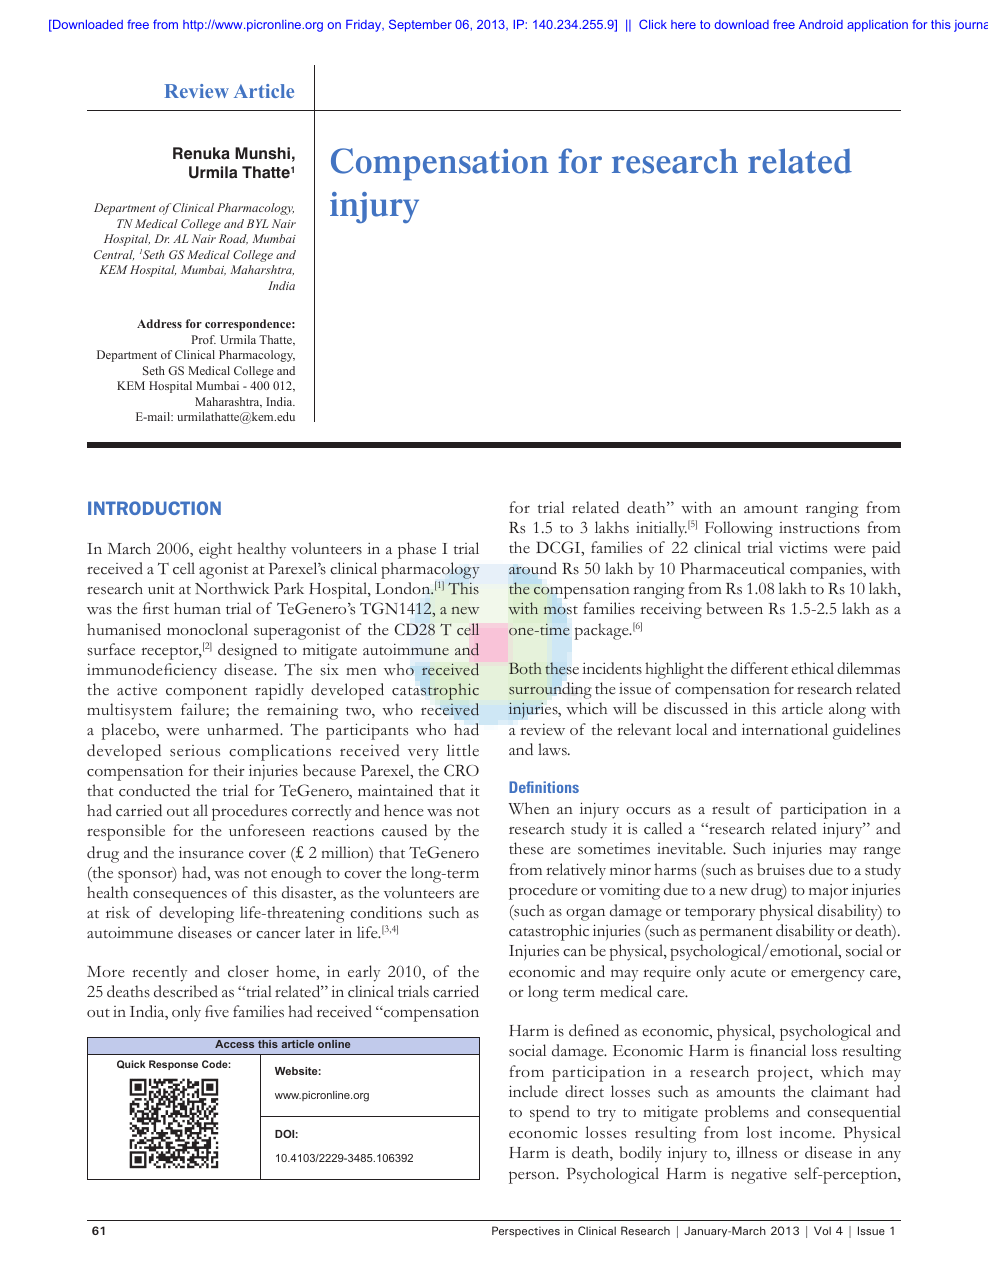 Compensation for research related injury – topic of research